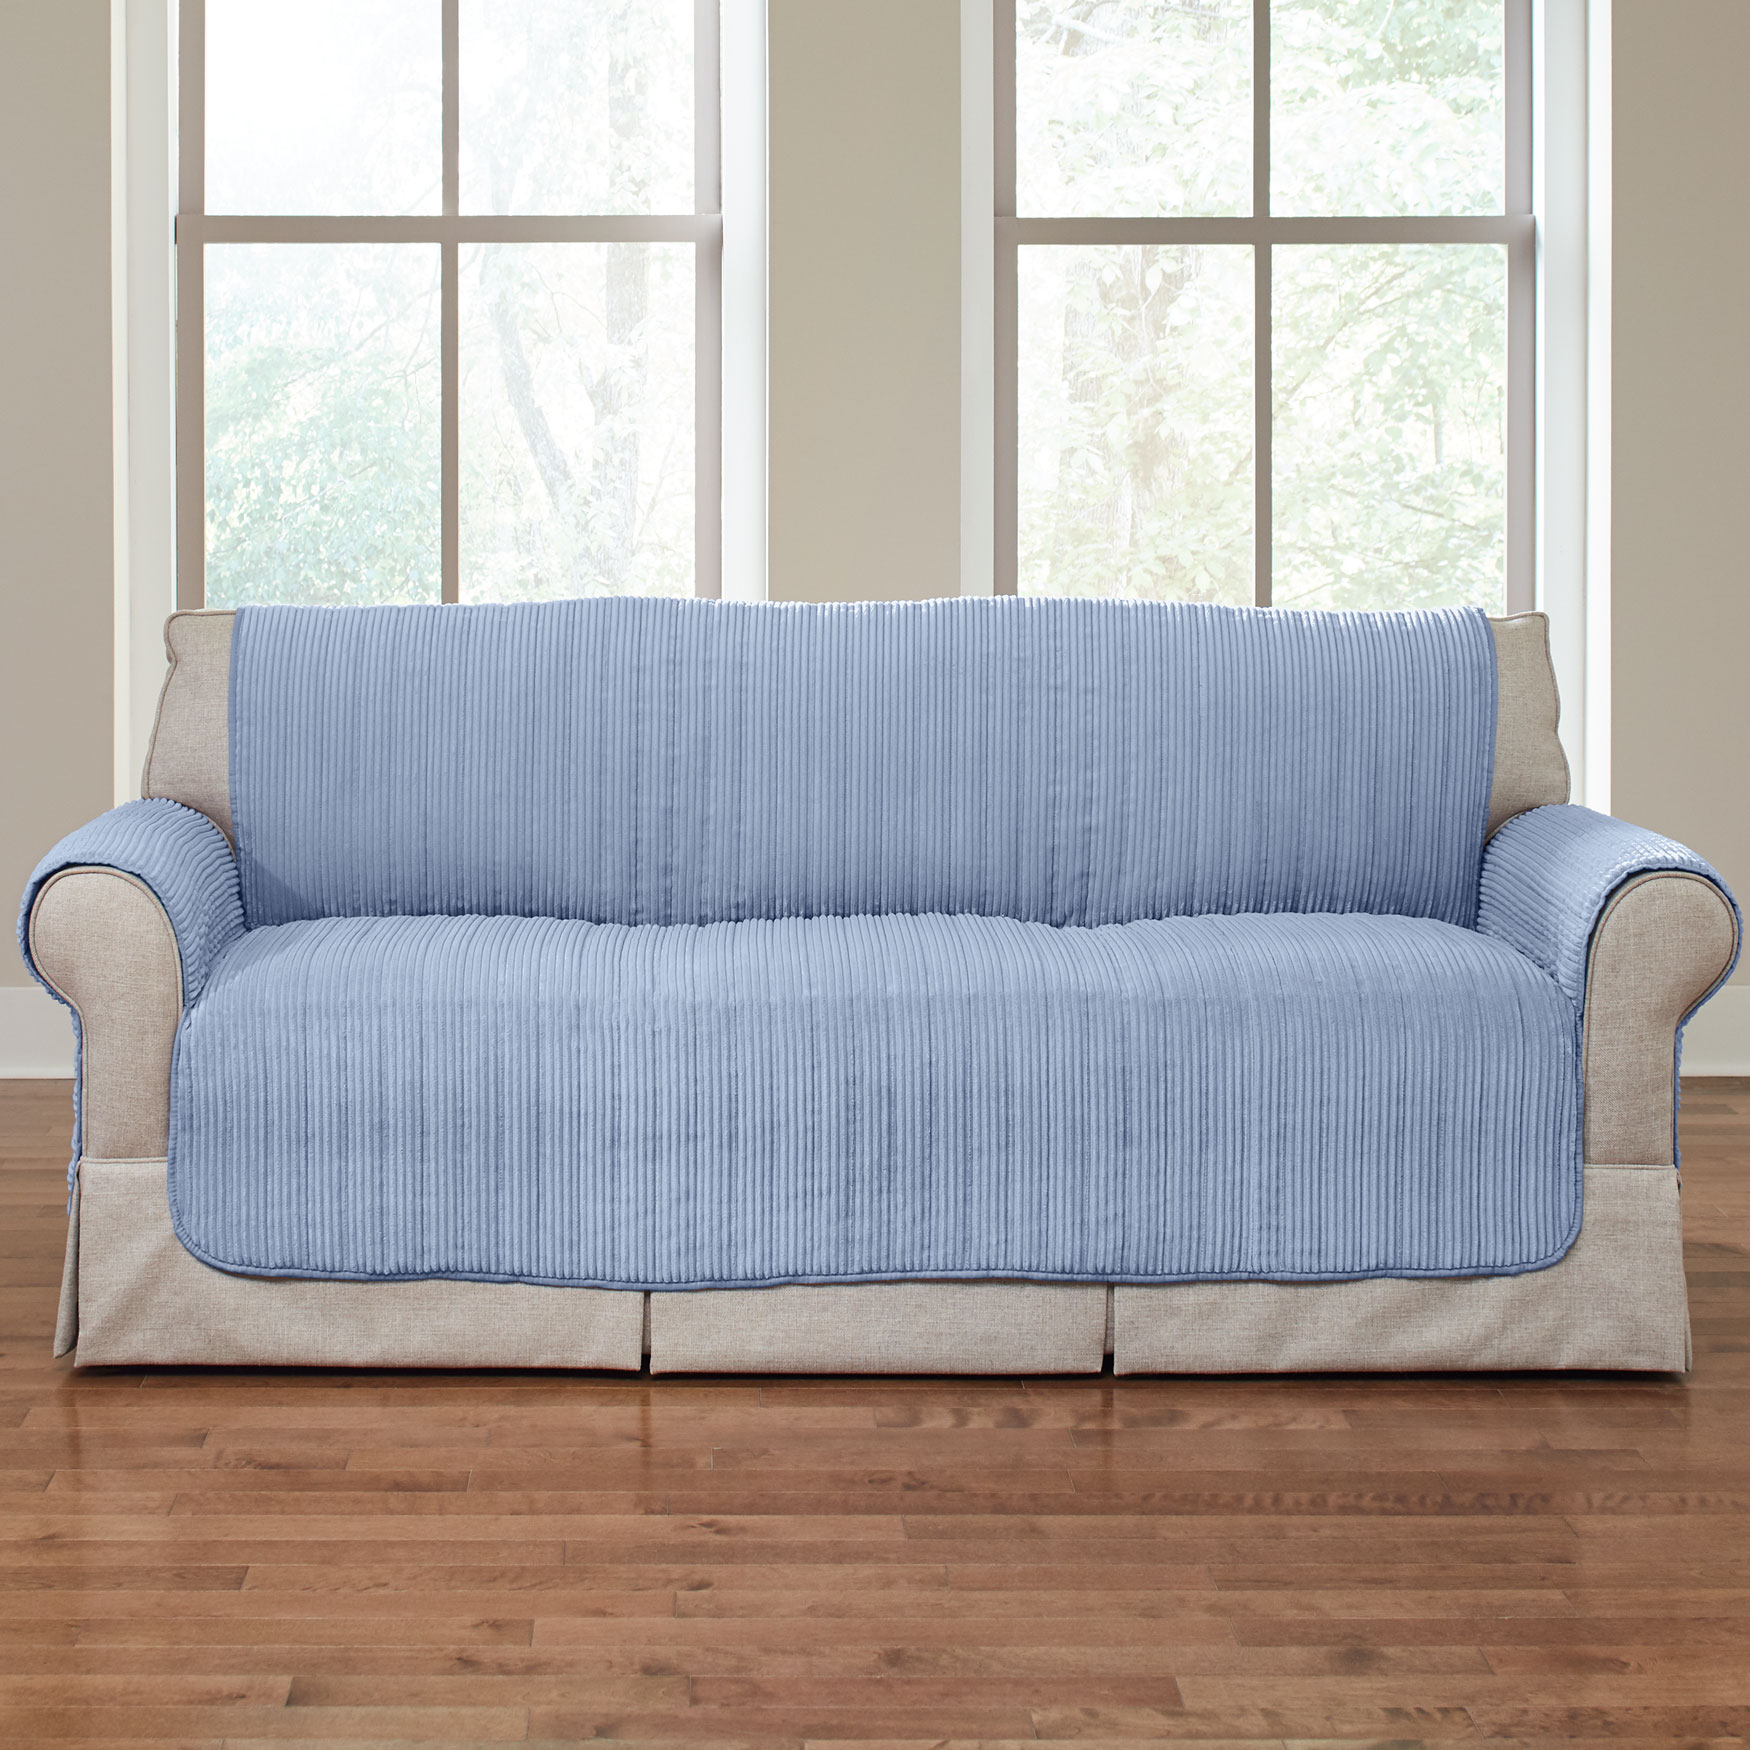 Reversible Plush Stripe Loveseat Protector, LIGHT BLUE